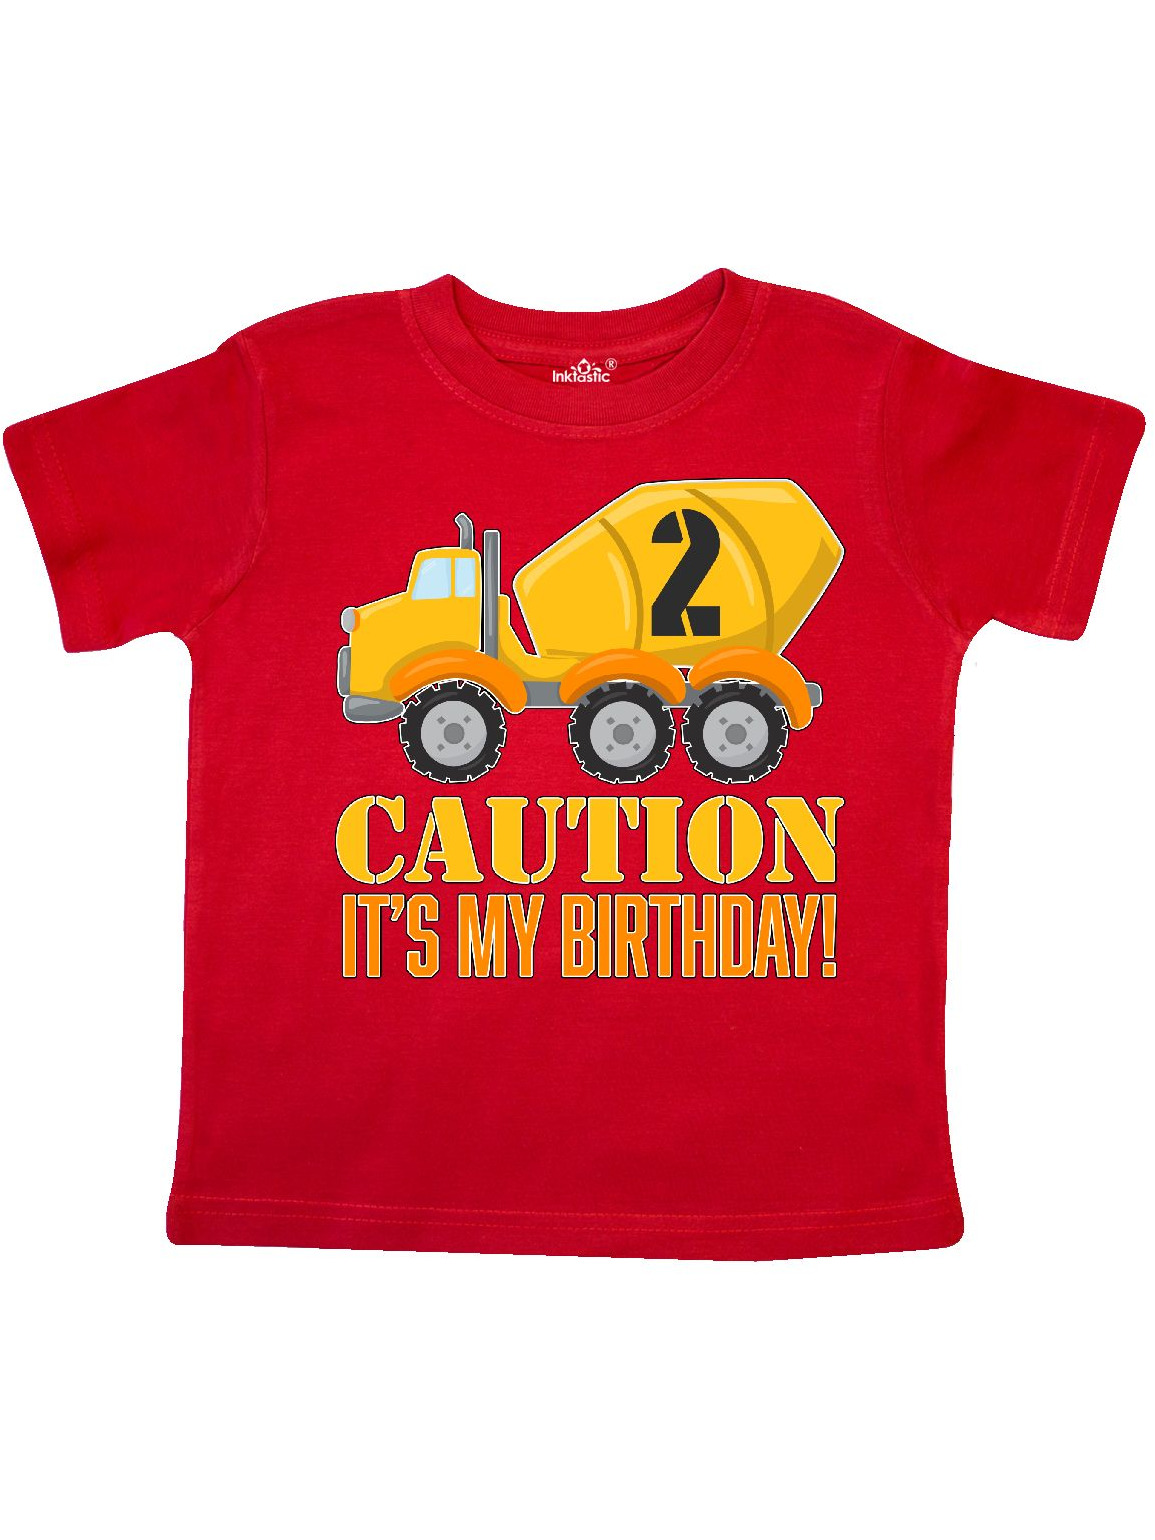 2nd birthday construction truck, cement mixer - 2 years old Toddler T-Shirt